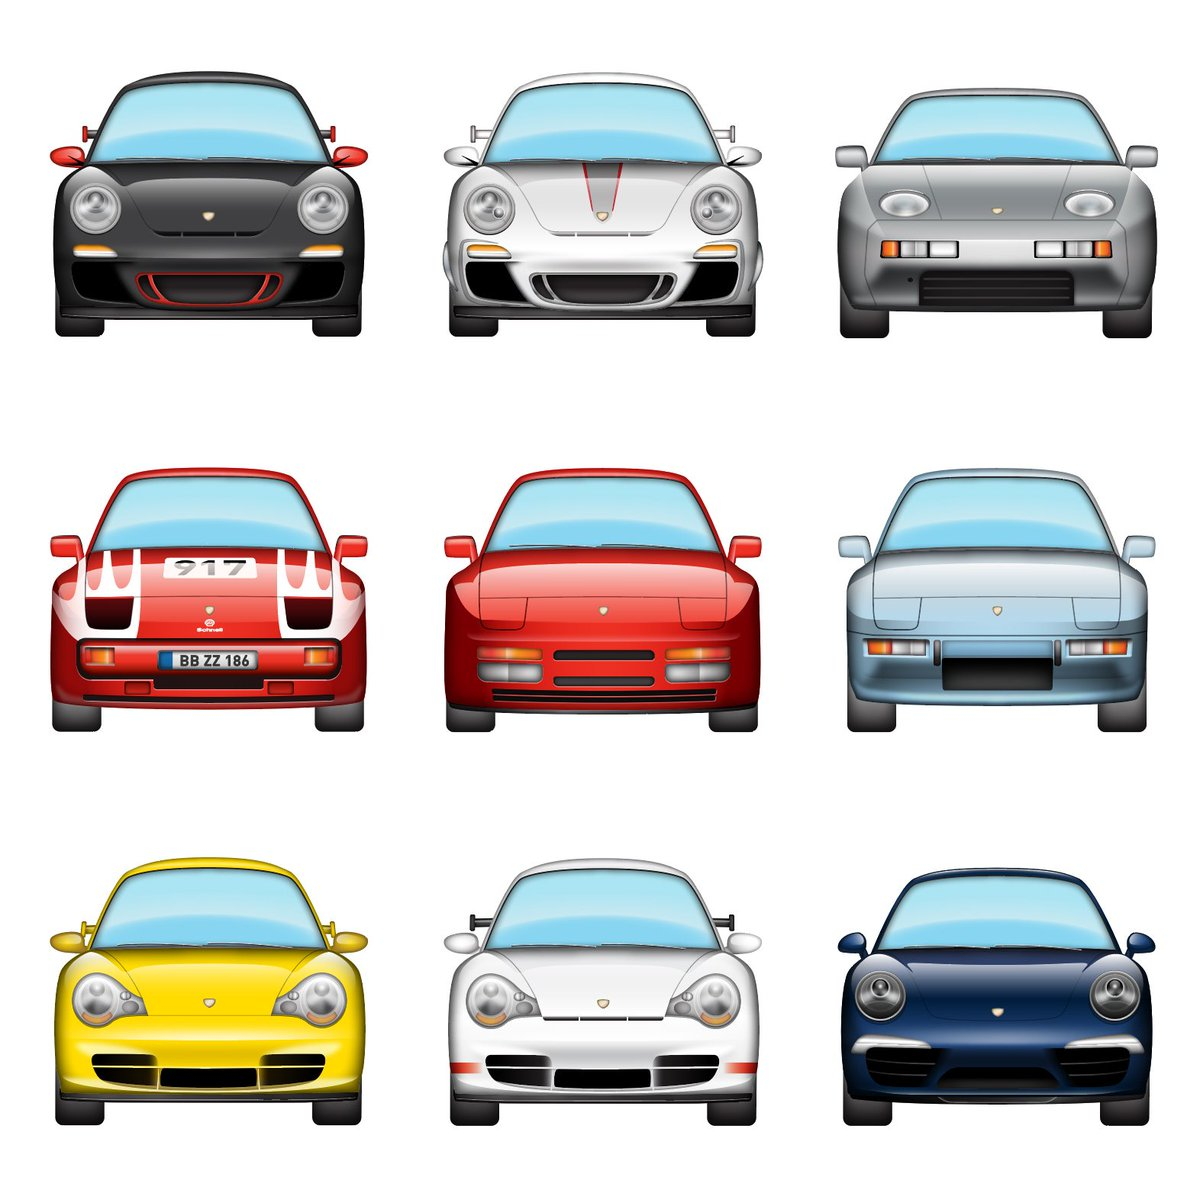 Fight Back Against Bad Emojis With This Porsche Automoji Sticker Pack for iOS 10 -  https://t.co/hei8FZvwNA https://t.co/dRO1RXALDb